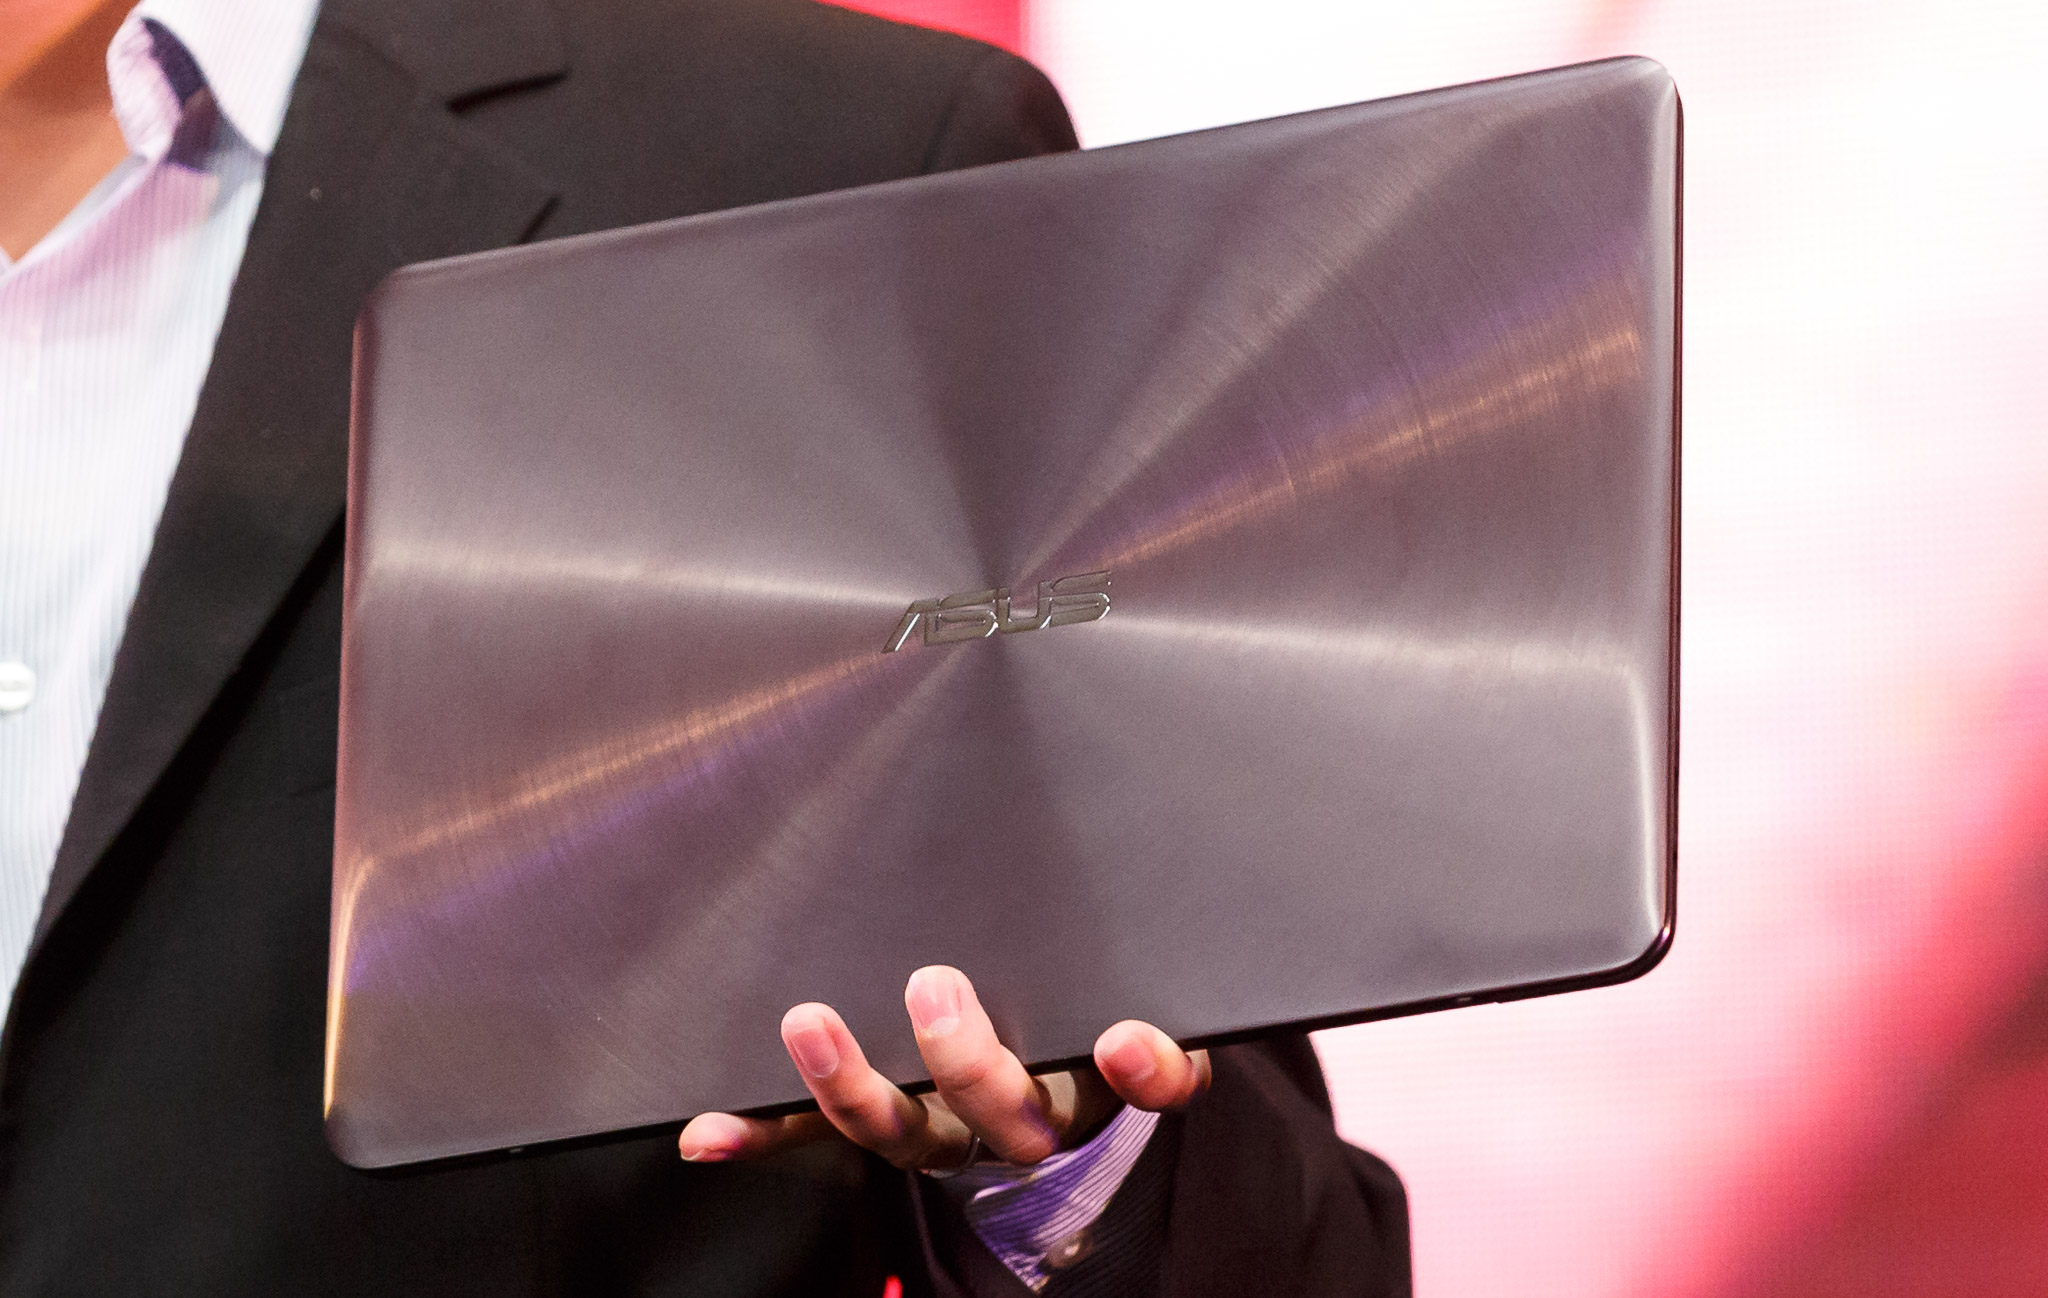 The Asus ZenBook UX305 is a slim but relatively high-powered laptop that emerged at IFA in Berlin.